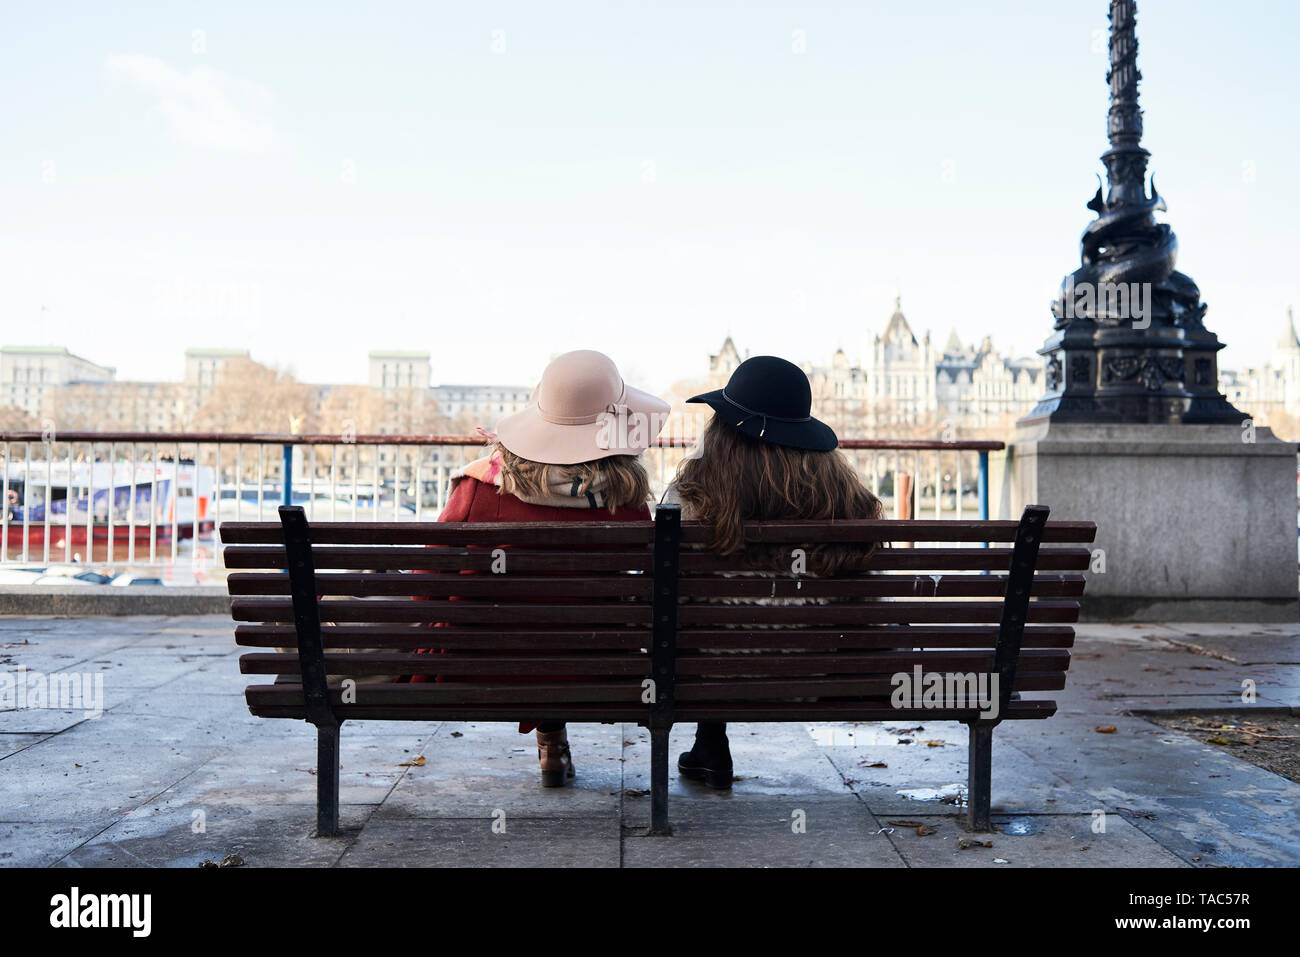 UK, London, rear view of two women sitting on a bench at River Thames promenade Stock Photo